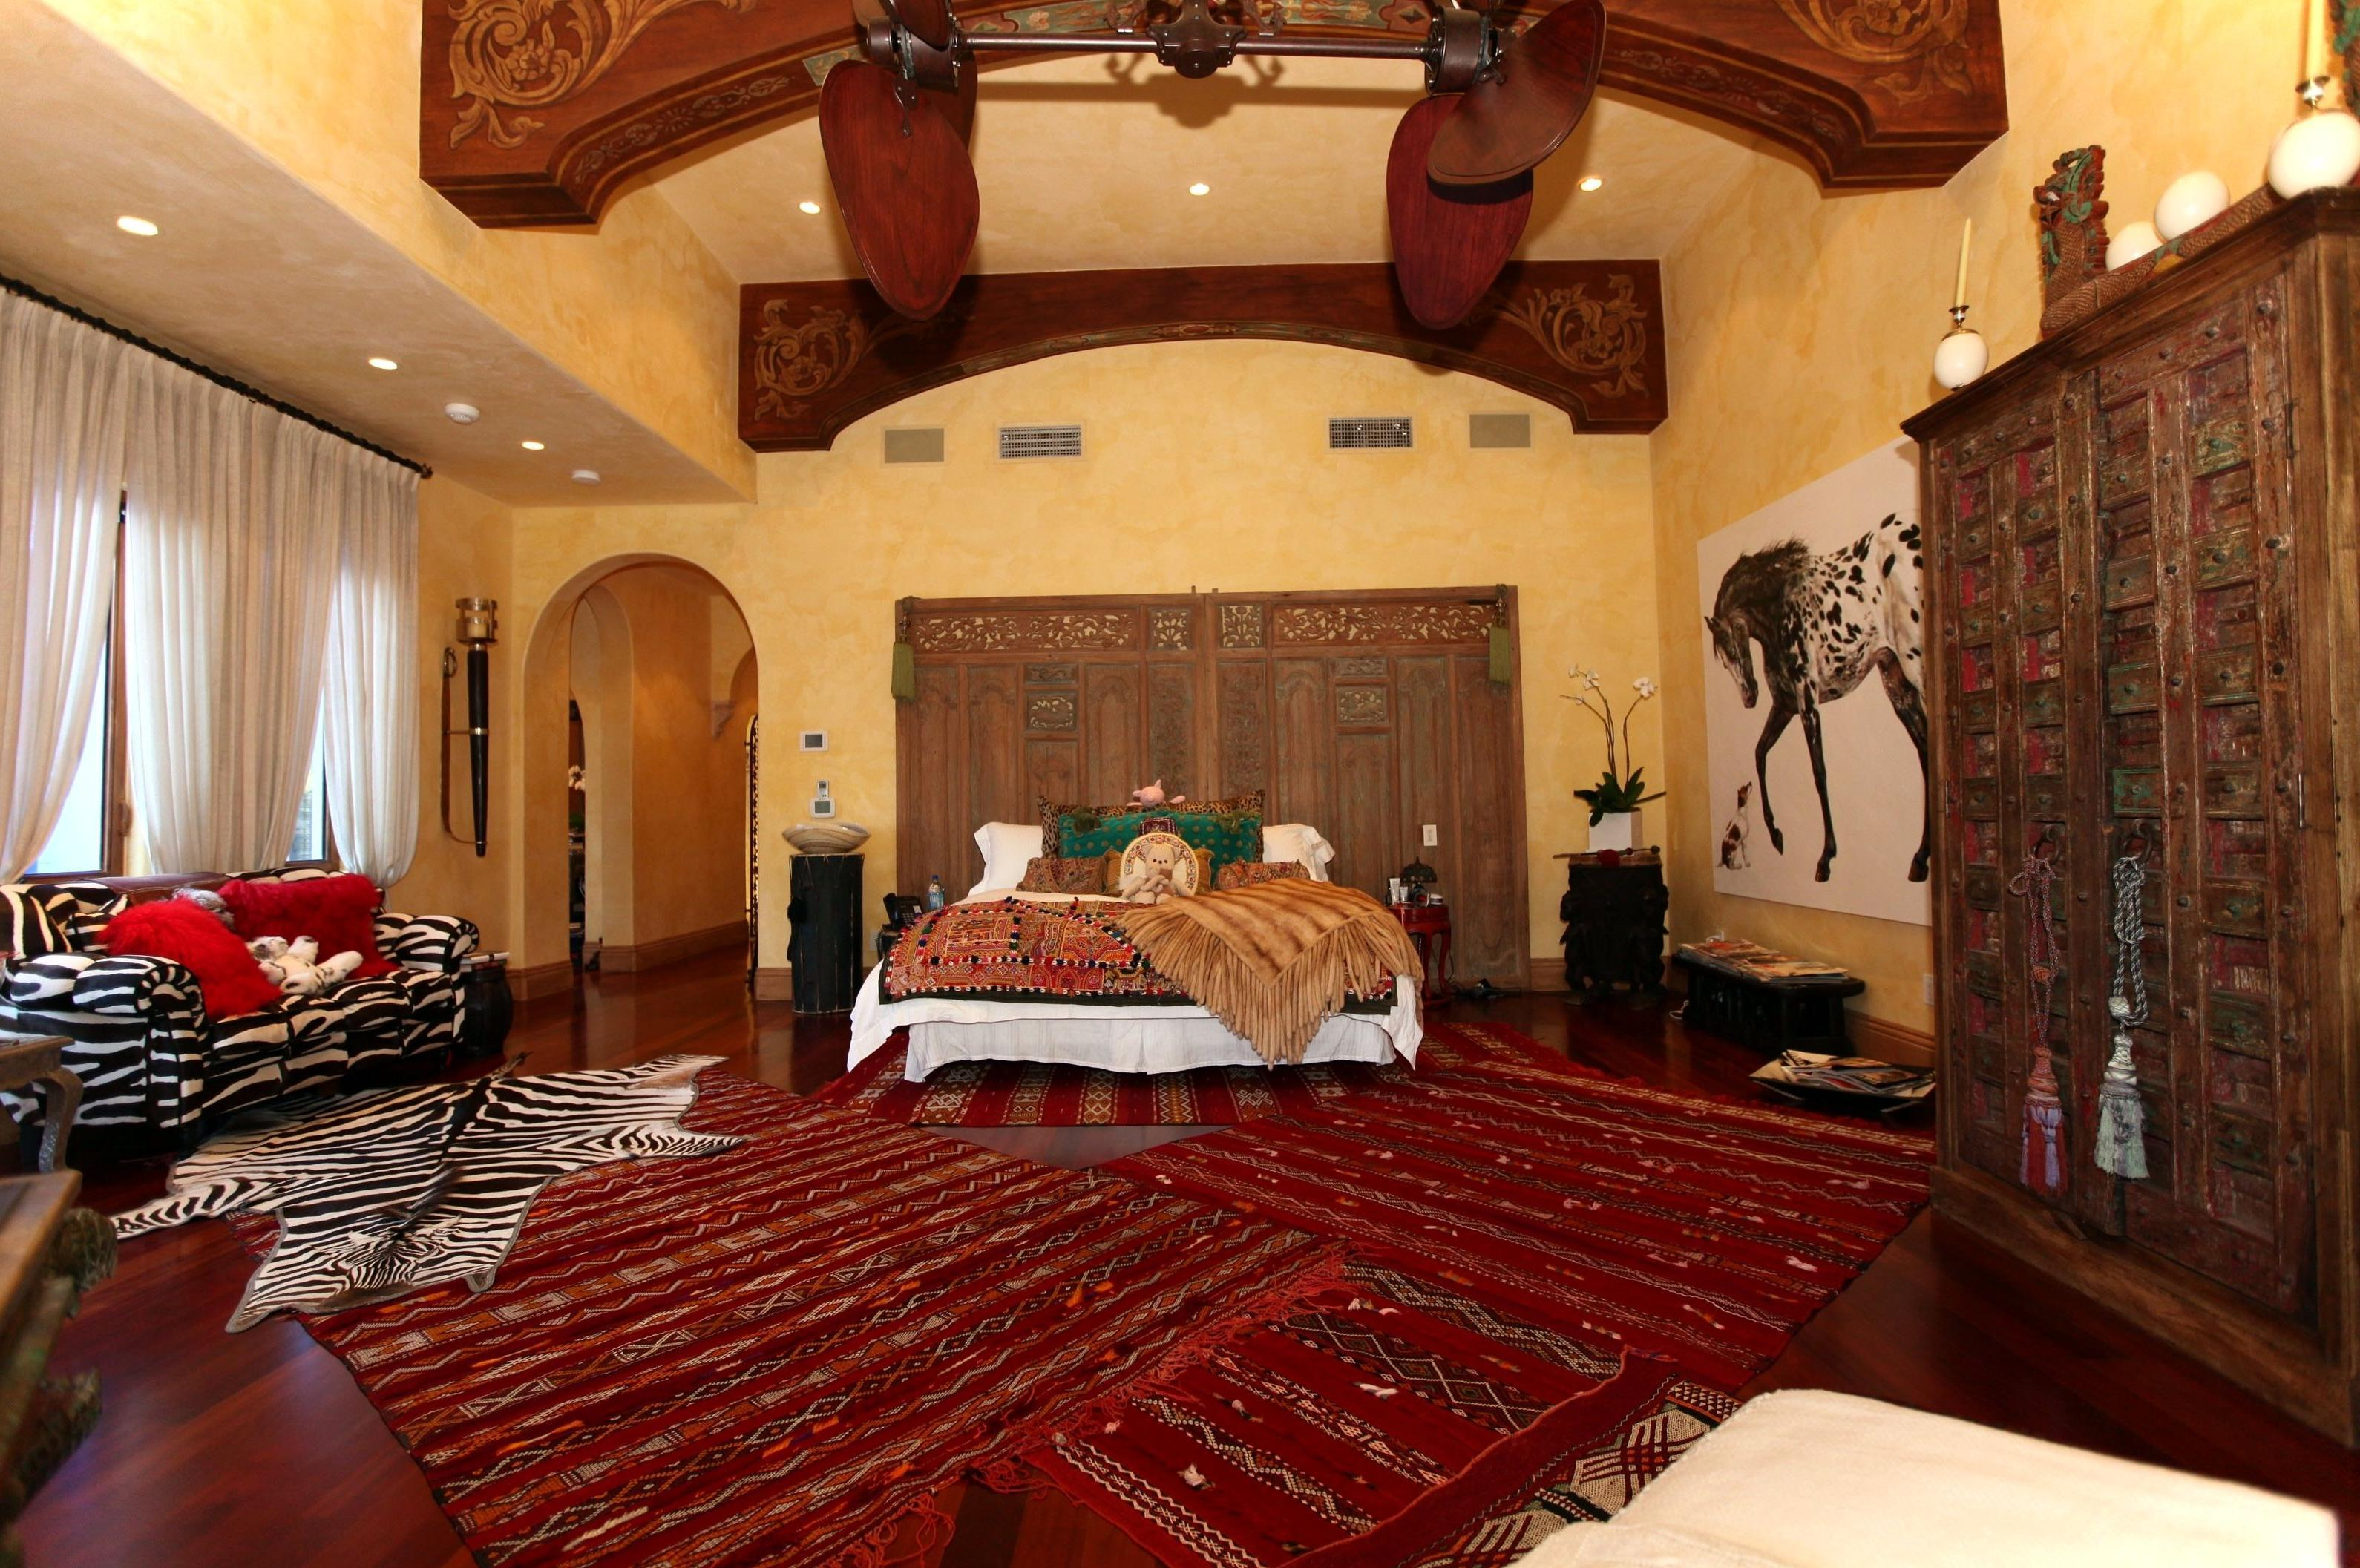 Mexican Rich Ethnicity Bedroom Decoration  Image 5 of 12. Mexican Home Decor Tips With Rich Ethnicity  3197   Interior Ideas